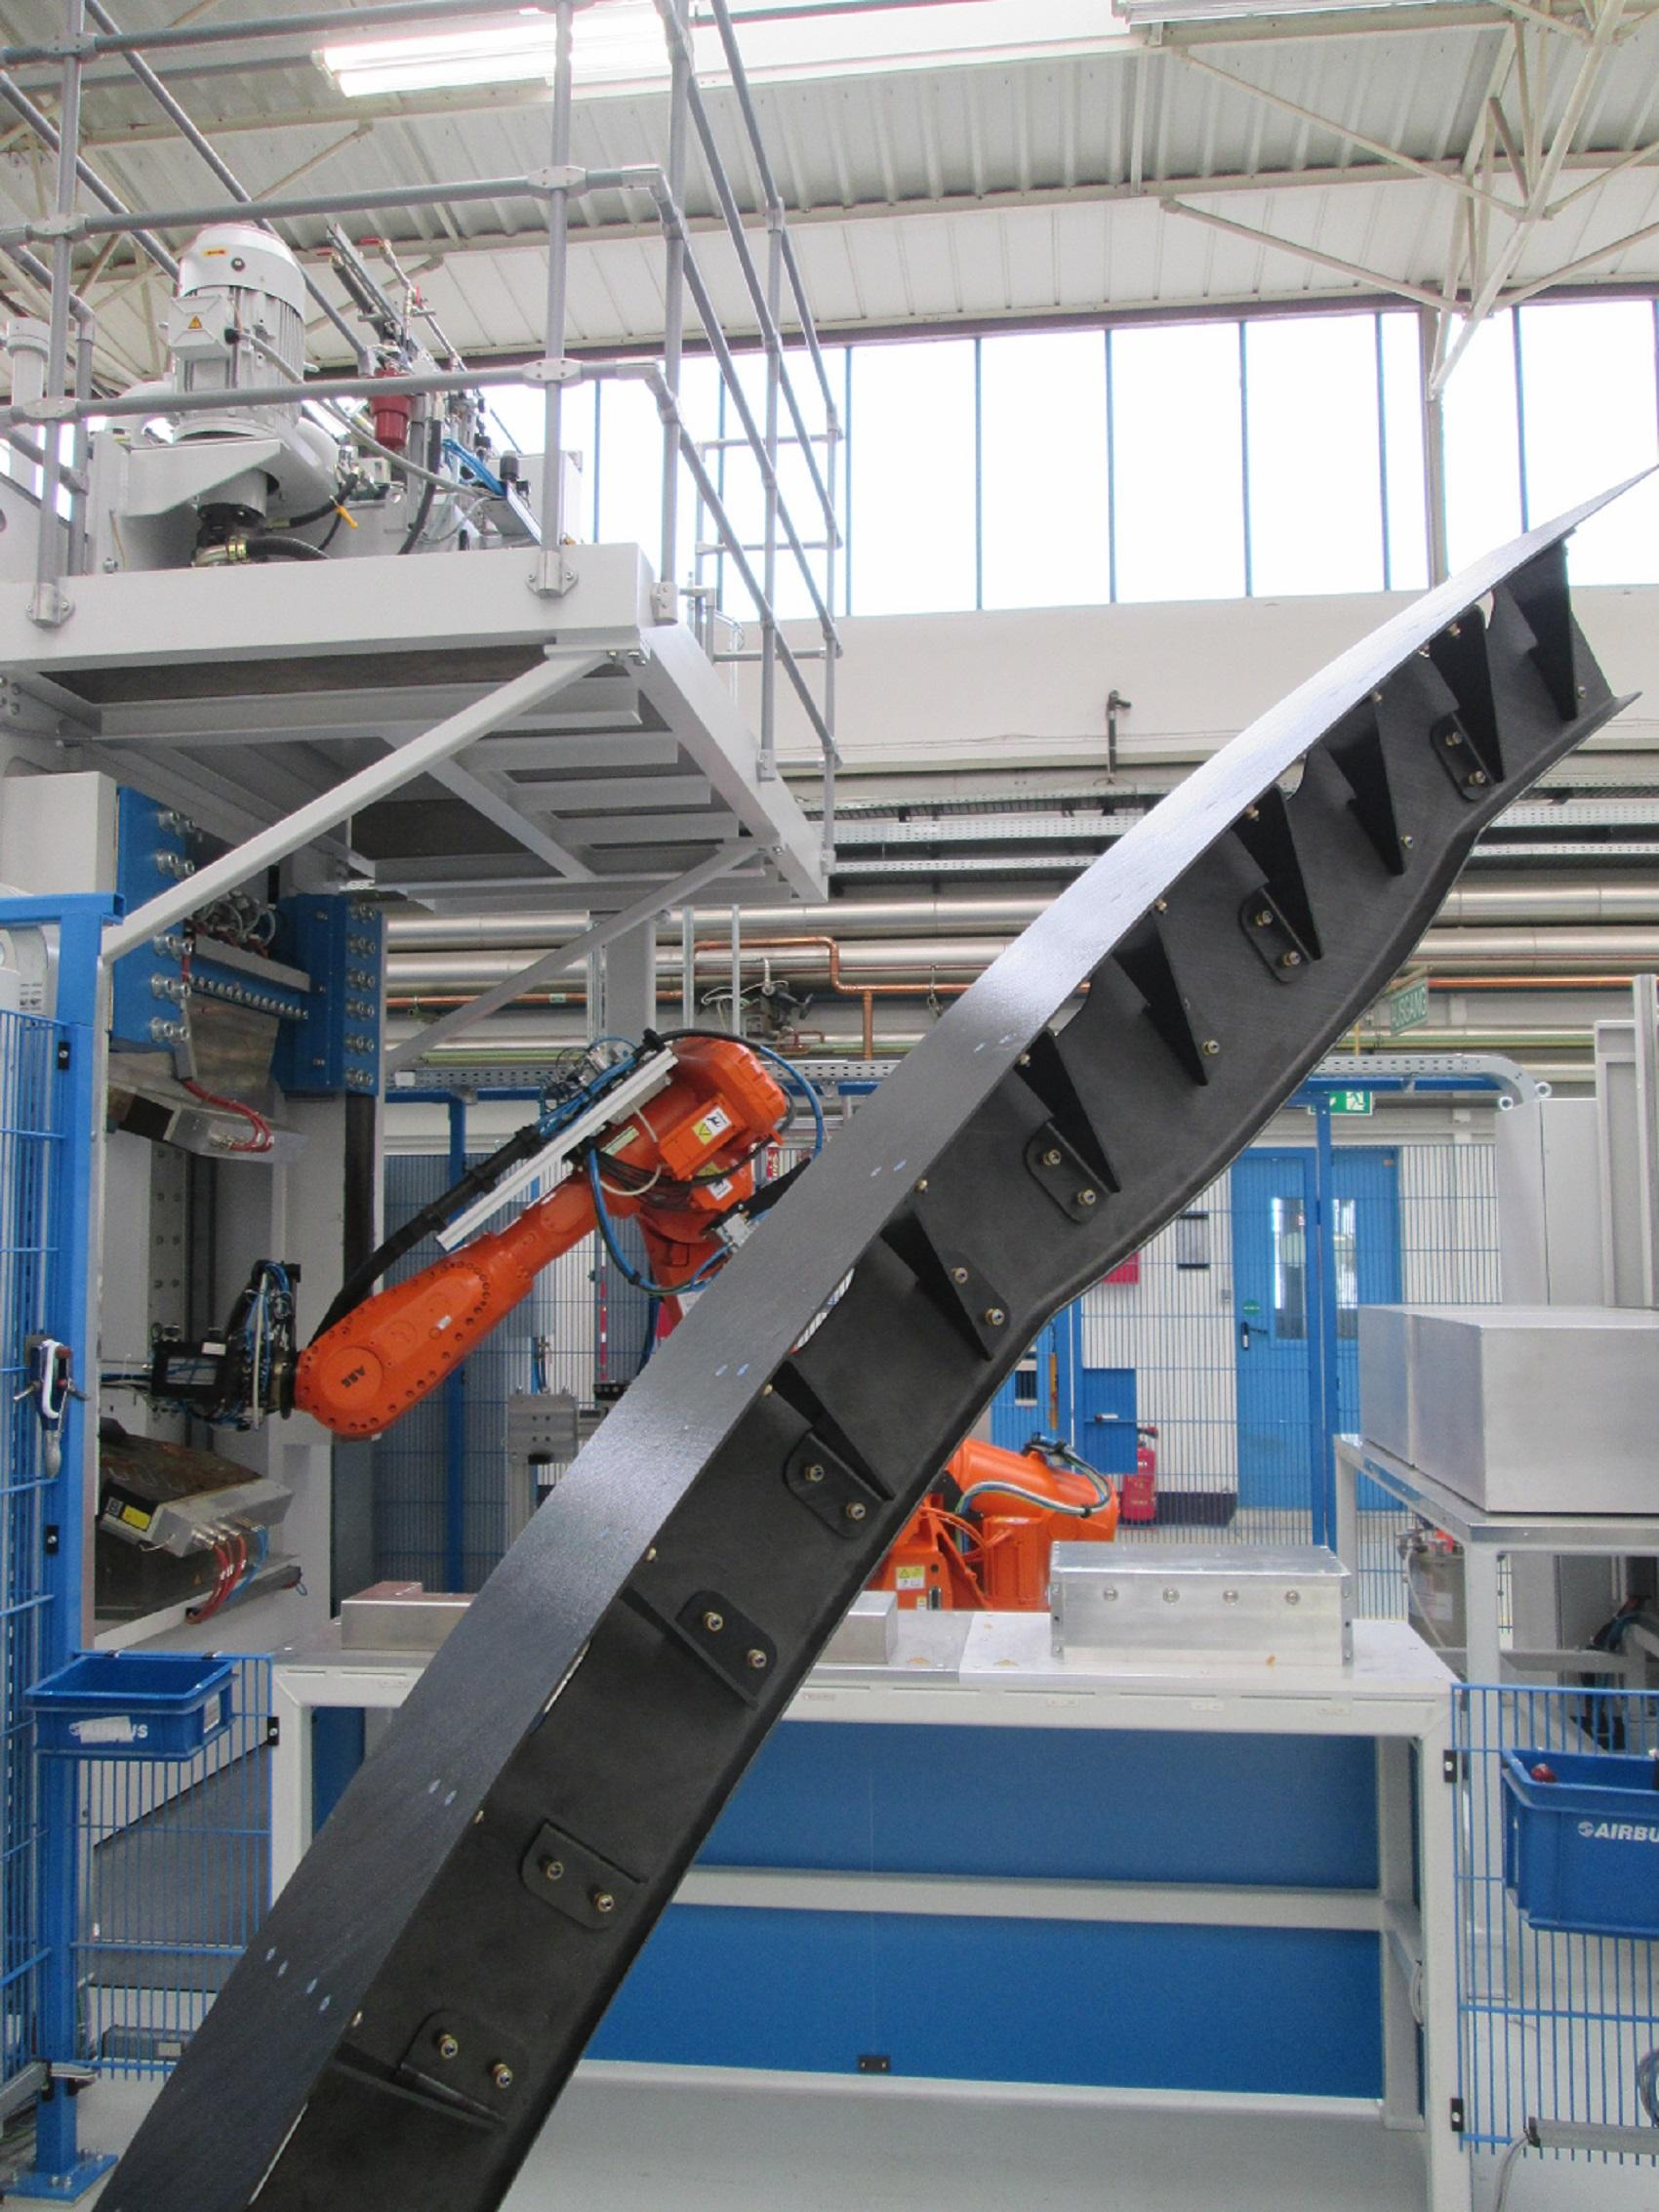 OSFIT rib demonstrator in front of production line